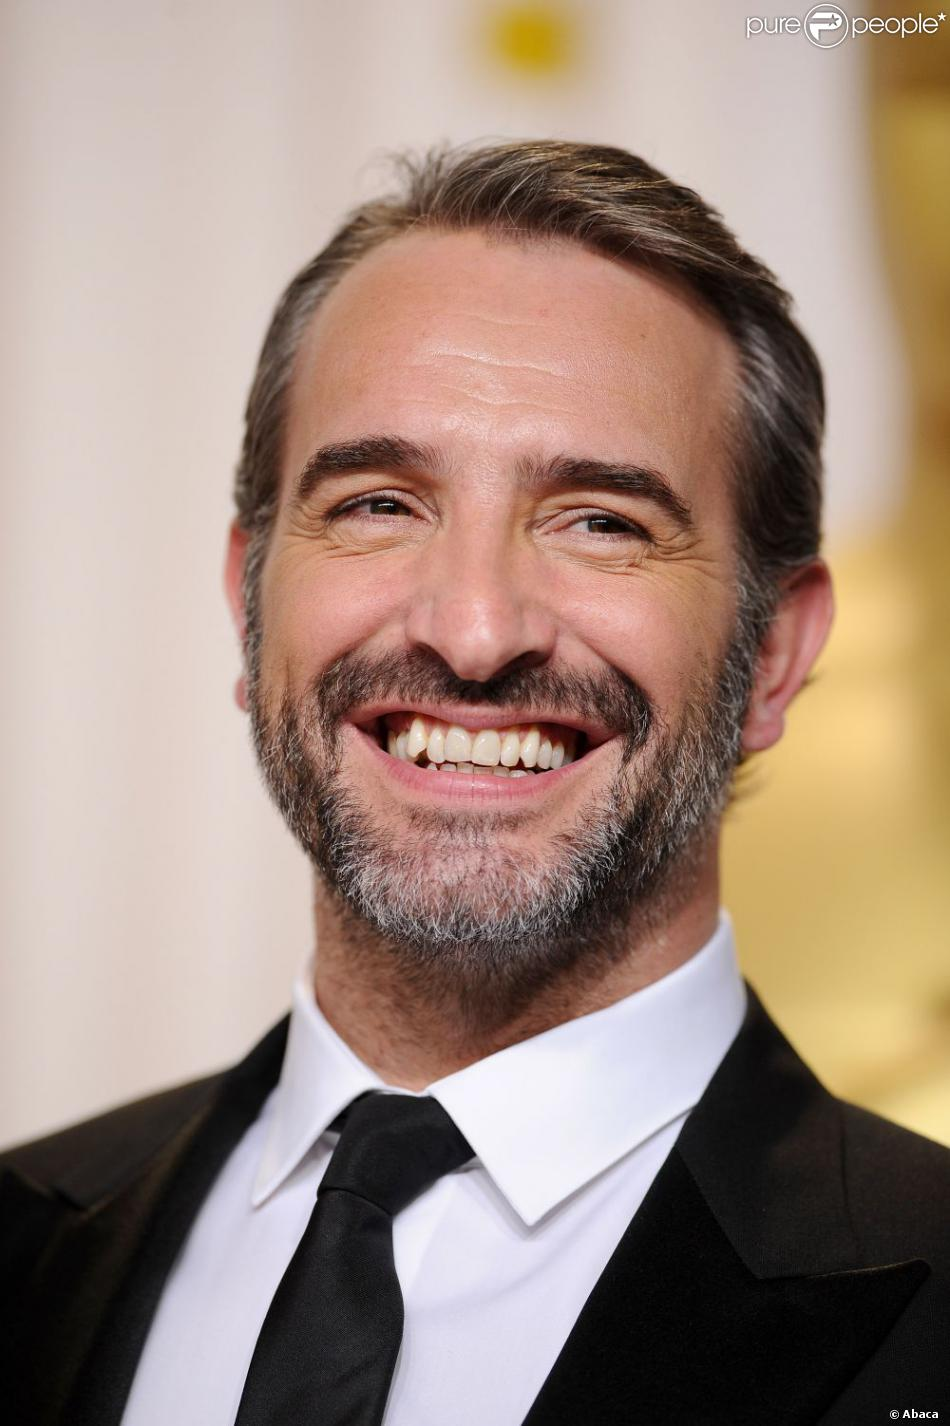 Jean dujardin bradley cooper george clooney tous for Jean dujardin photo